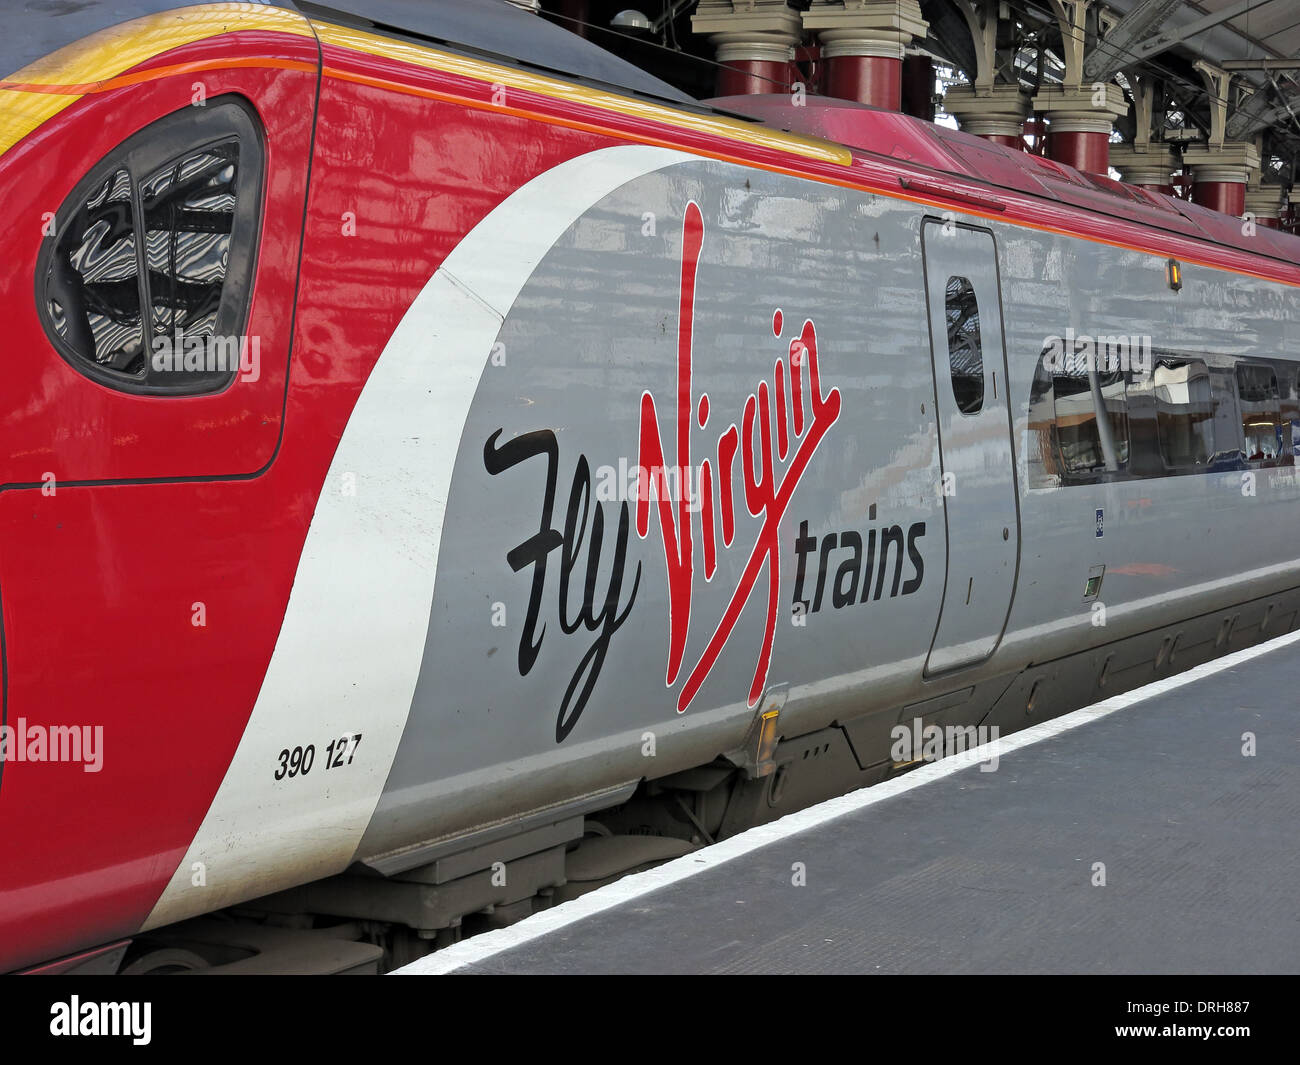 Street,west,coast,main,line,mainline,westcoast,electrification,project,HS2,HS1,hi,speed,pendo,pendalino,hi-speed,Hispeed,engineering,alstrom,London,station,train,operating,company,in,the,United,Kingdom,owned,by,Virgin,Group,and,Stagecoach,intercity,NW,England,North,west,NORTHWEST,upgrade,PPM,Gotonysmith,stations,red,white,&,gray,livery,development,agency,Class,221,Super,Voyager,Richard,Branson,Branston,Pickle,British,diesel-electric,multiple-unit,express,trains,built,in,Belgium,by,Bombardier,Transportation,GB,Great,Britain,Class,220,Voyager,units,BR,British,Rail,Chester,Crewe,Warrington,BQ,Bank,Quay,franchise,premiums,Office,of,Rail,Regulation,statistics,derailed,derail,on,the,platform,platforms,at,Buy Pictures of,Buy Images Of